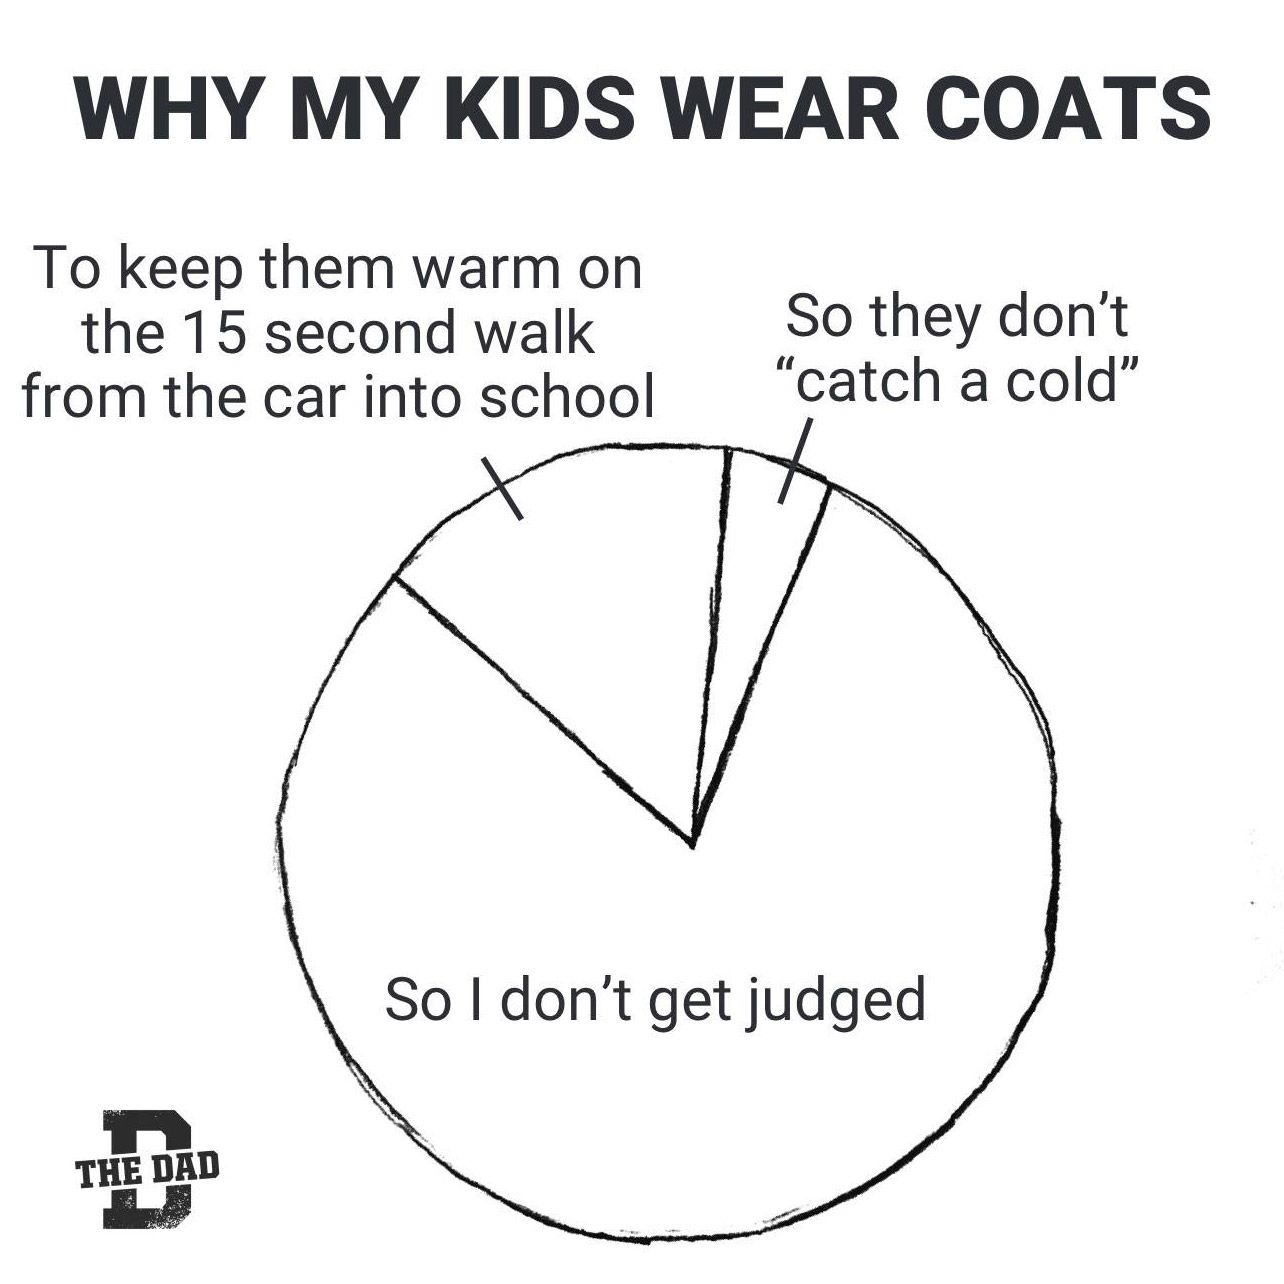 10 Funny Pie Charts That Perfectly Explain Your Life As A Parent